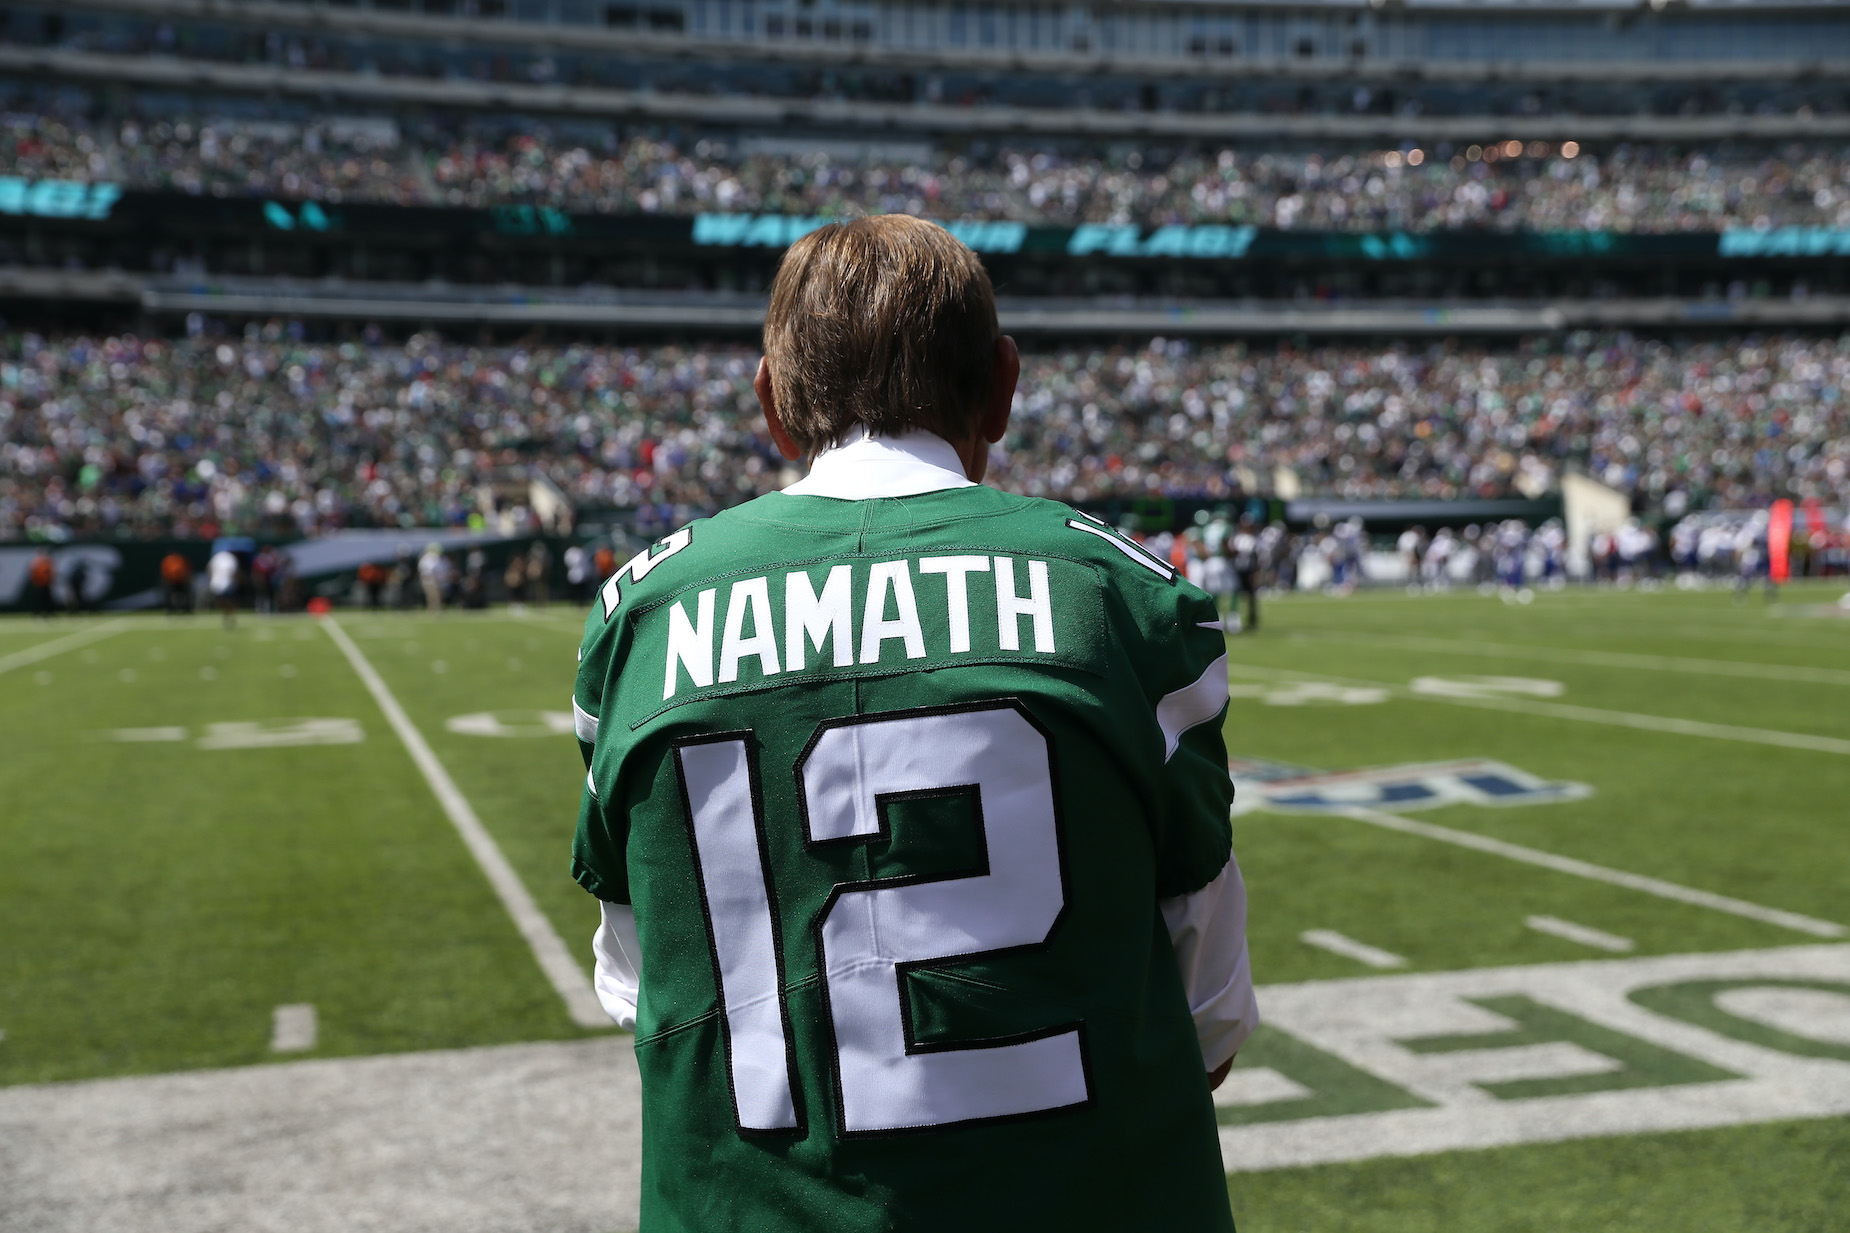 Joe Namath Made an Uncomfortable Comment About Referee Sarah Thomas Ahead of the Super Bowl